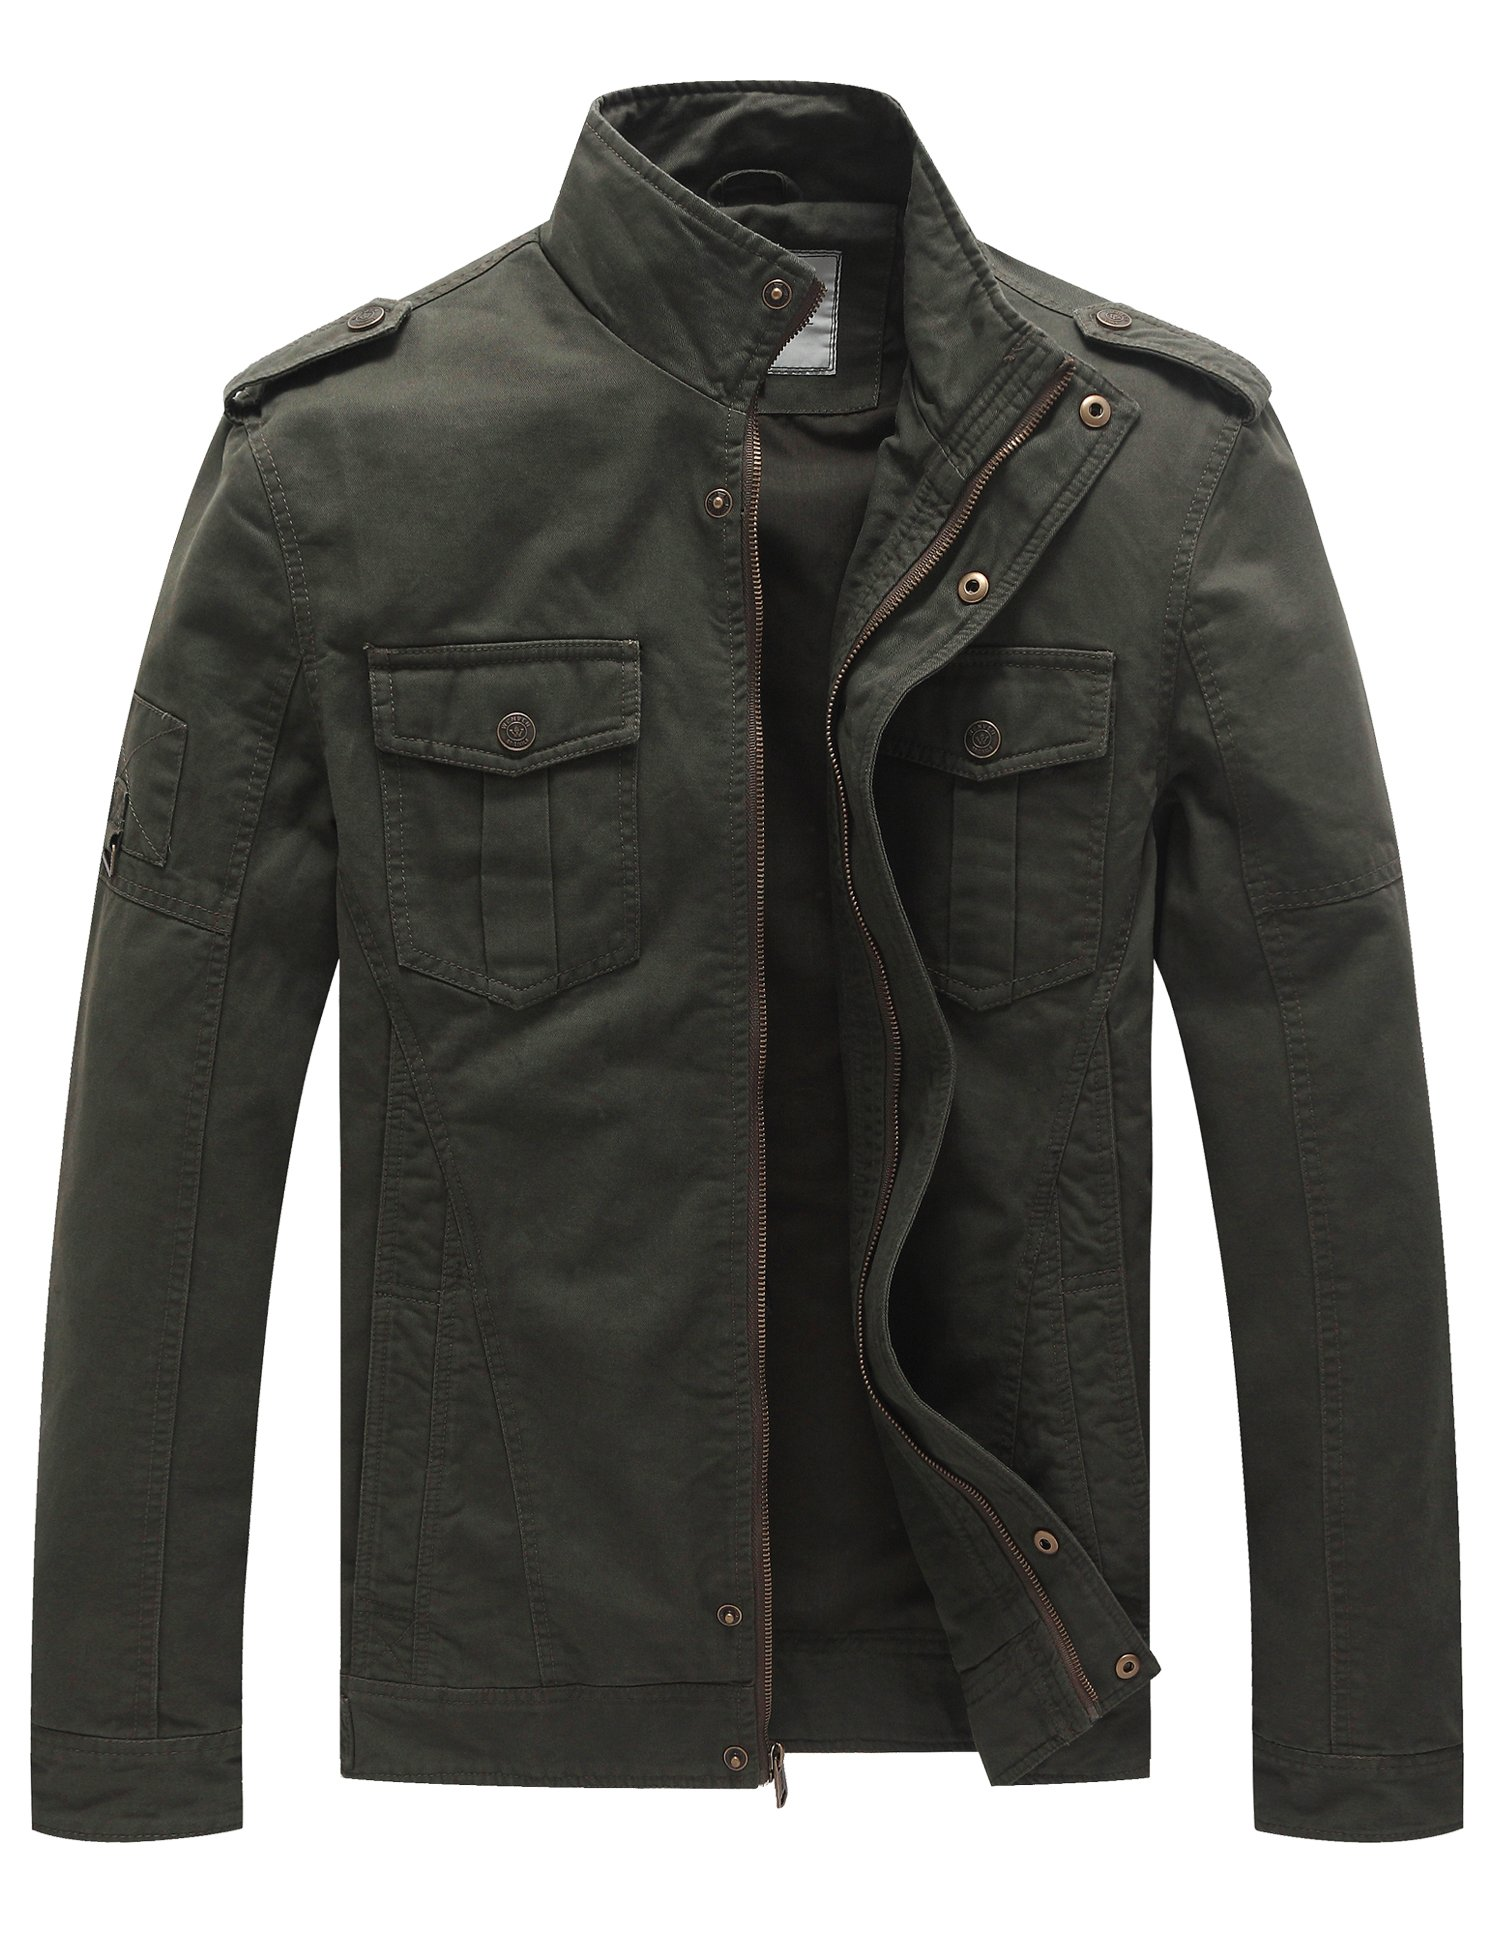 WenVen Men's Casual Cotton Military Jacket (Army Green, Medium) by WenVen